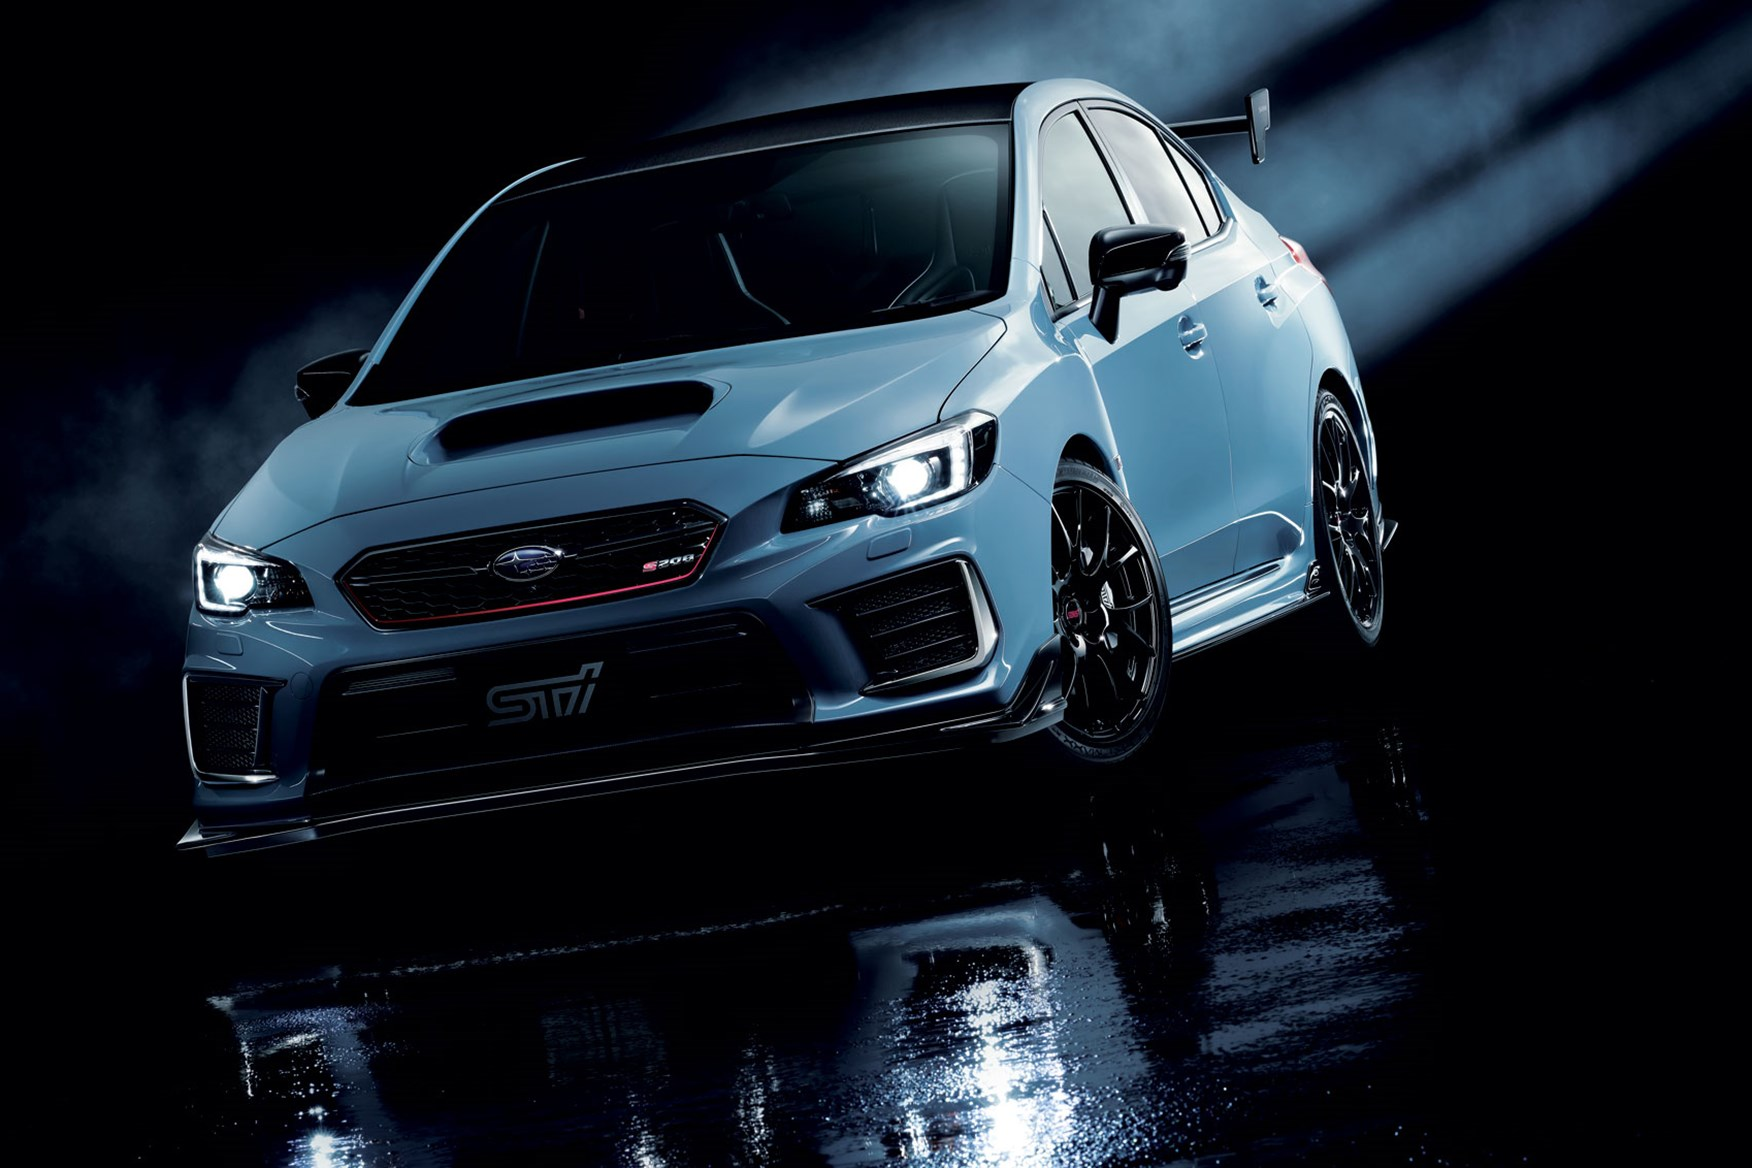 subaru wrx sti s208 and brz sti sport an alphabet soup of rh carmagazine co uk